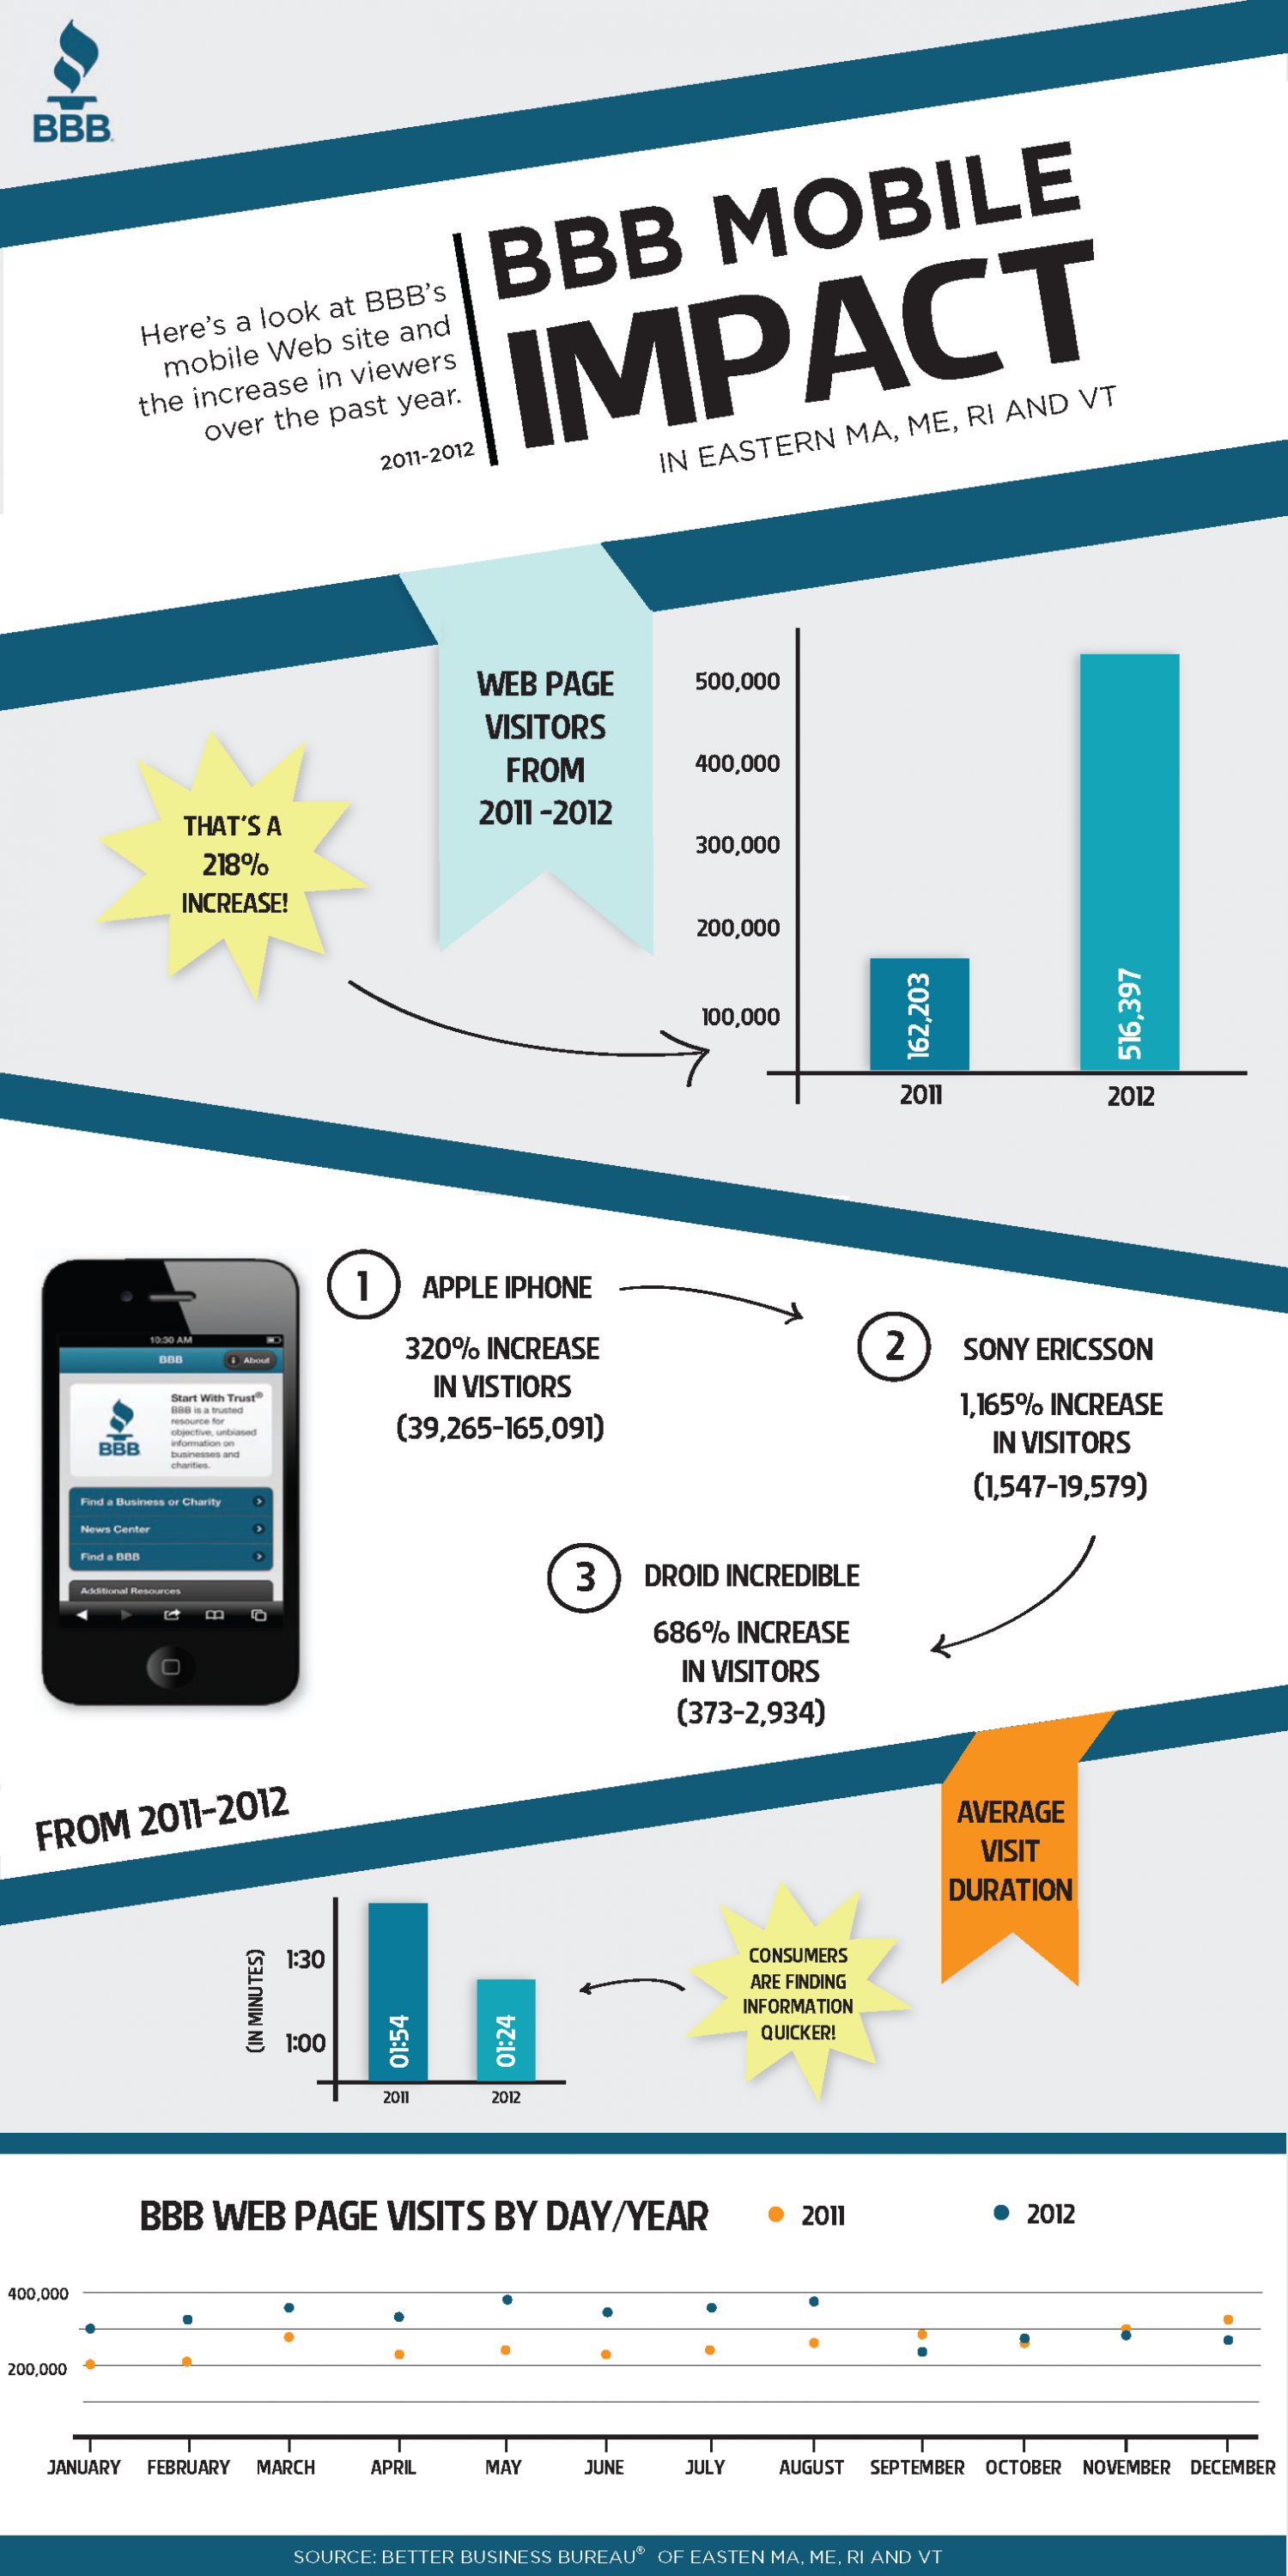 BBB Mobile Impact Infographic